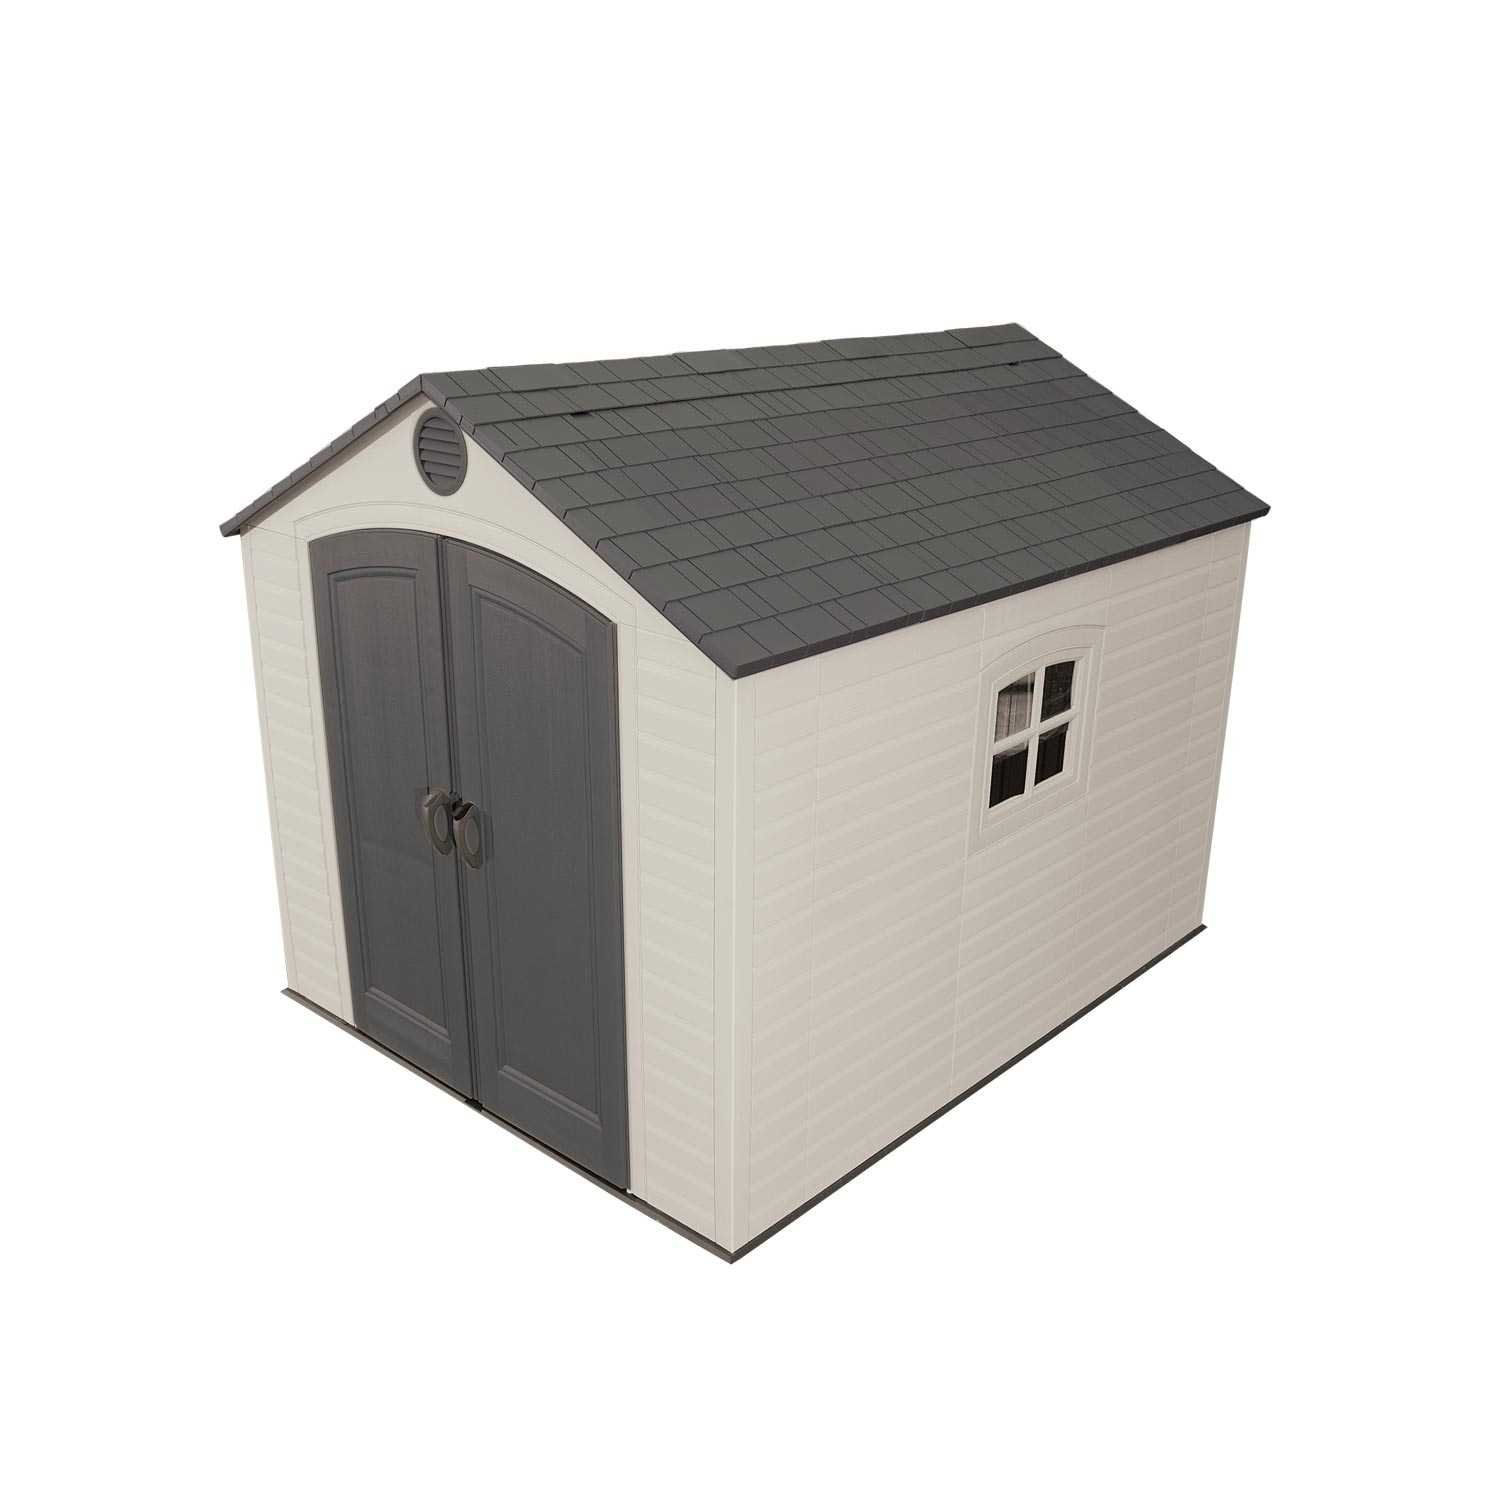 Elegant Amazon.com : Lifetime 6405 Outdoor Storage Shed With Window, Skylights, And  Shelving, 8 By 10 Feet : Garden Shed : Garden U0026 Outdoor